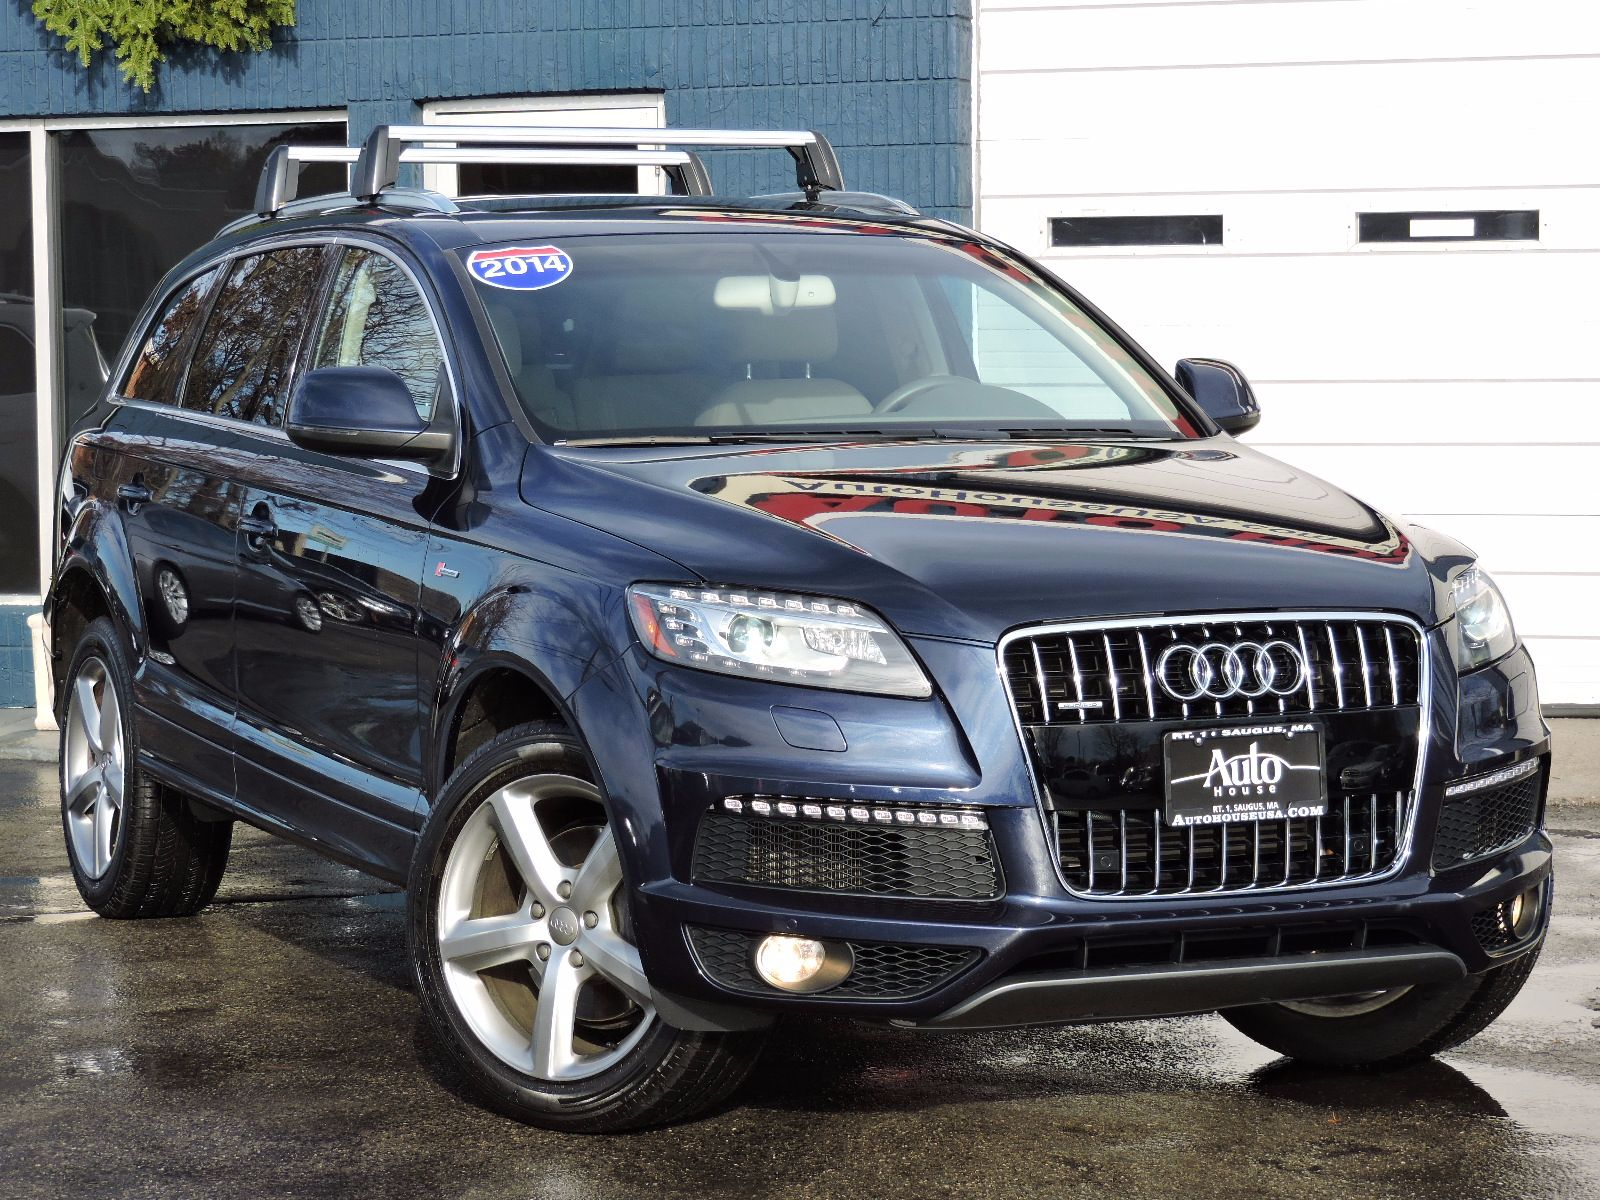 fully product bang tdi awesomeamazinggreat quattro amazing loaded prestige audi w